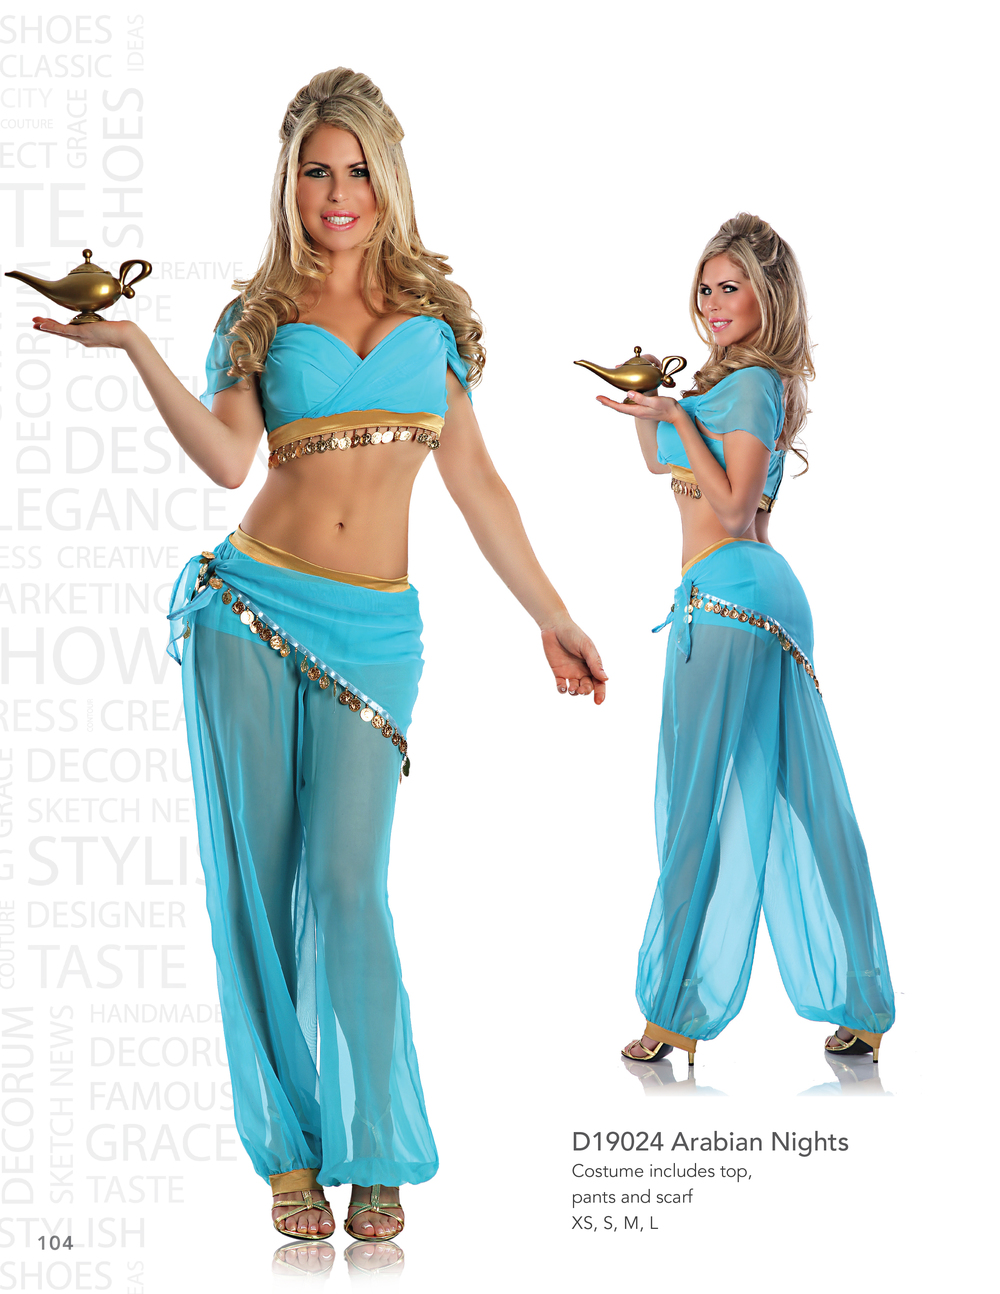 D19024 Arabian Nights